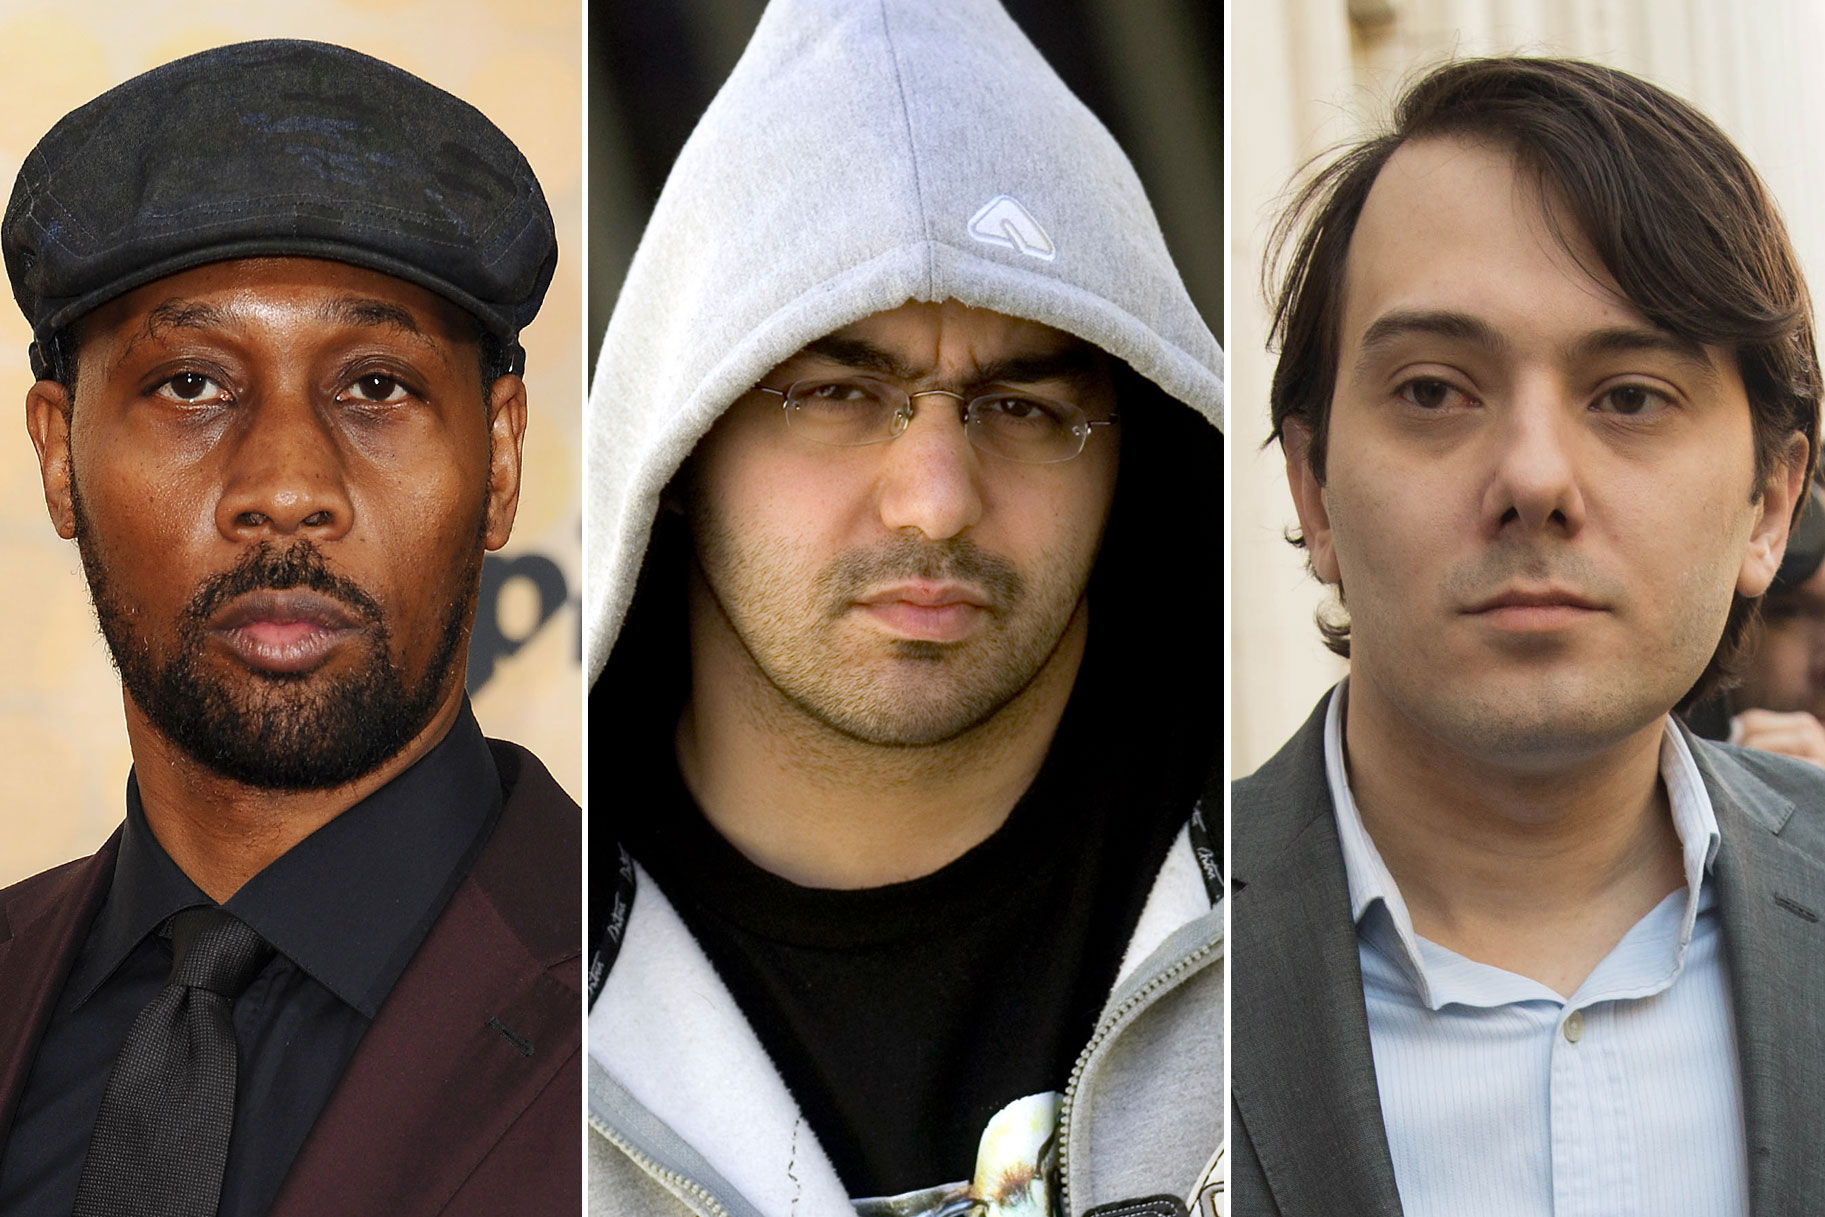 Wu-Tang Clan's RZA, music producer Cilvaringz and Martin Shkreli